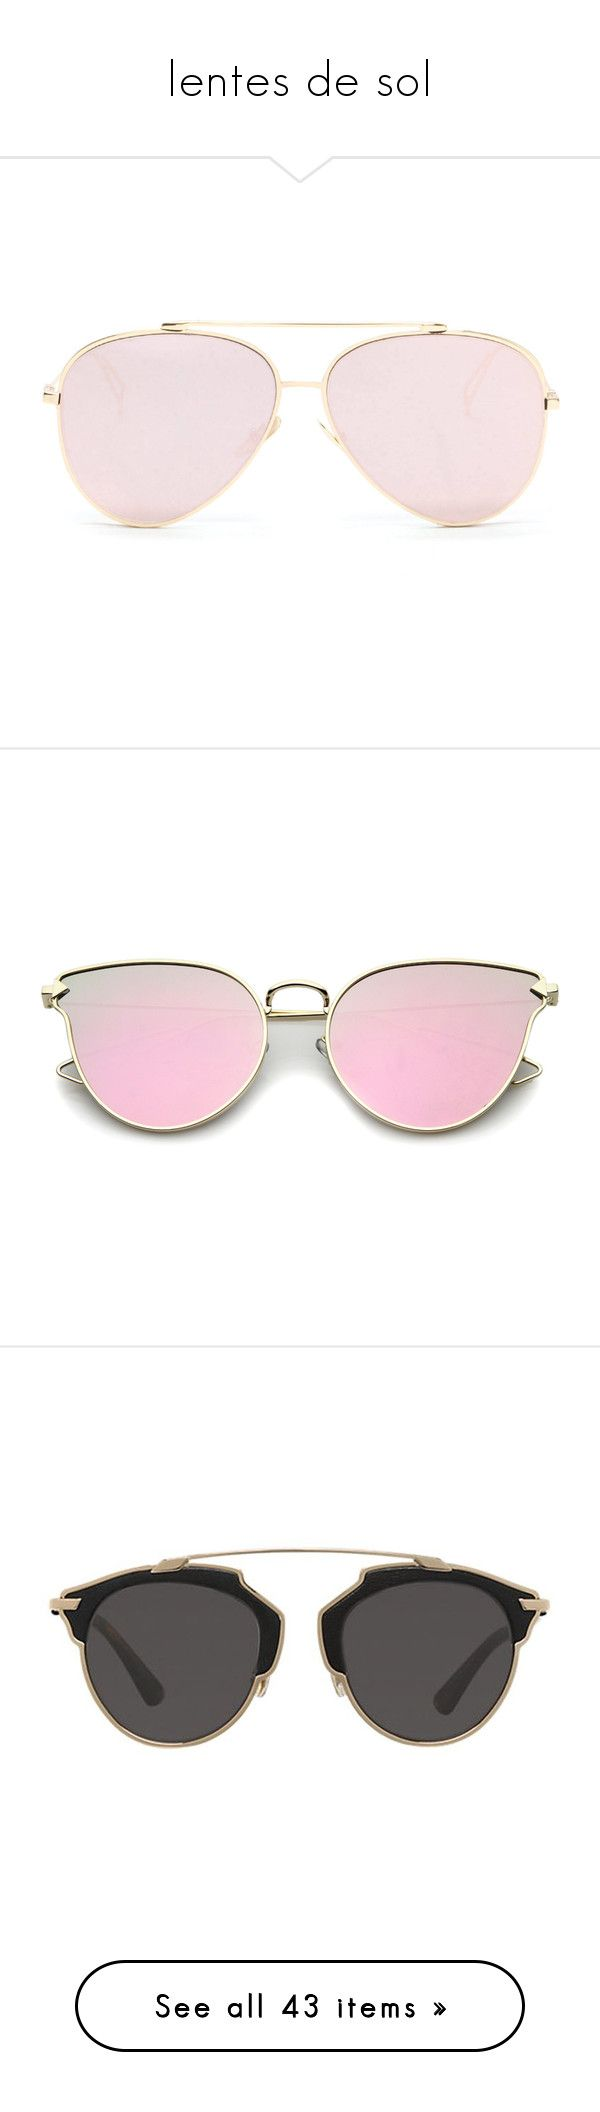 """""""lentes de sol"""" by hipster999 ❤ liked on Polyvore featuring accessories, eyewear, sunglasses, glasses, eyes, aviator sunglasses, aviator style sunglasses, pink, pink mirrored sunglasses and metal frame sunglasses"""